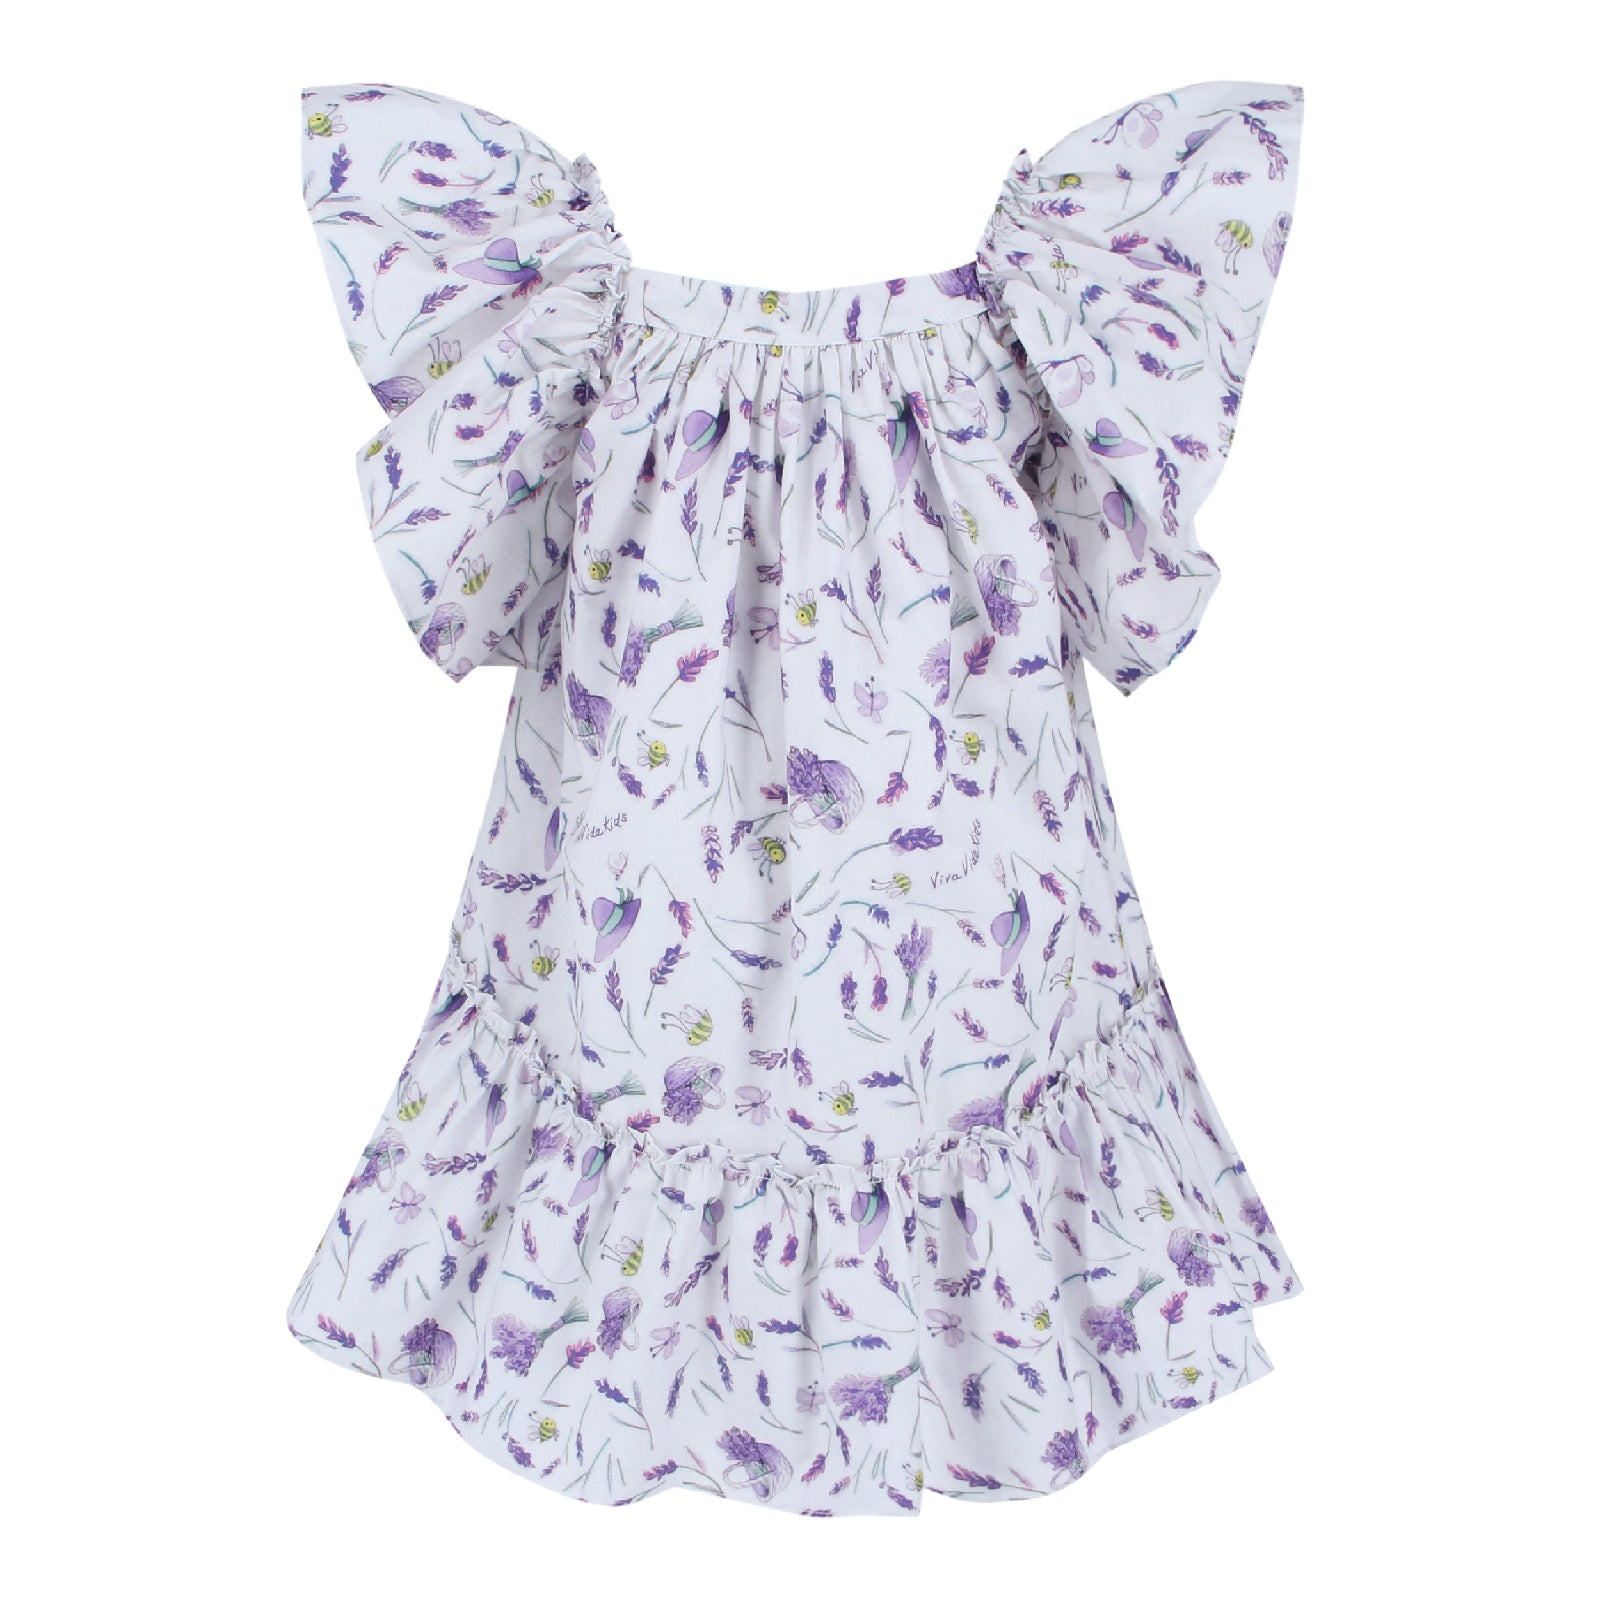 Valentina Dress - Lavender Fields